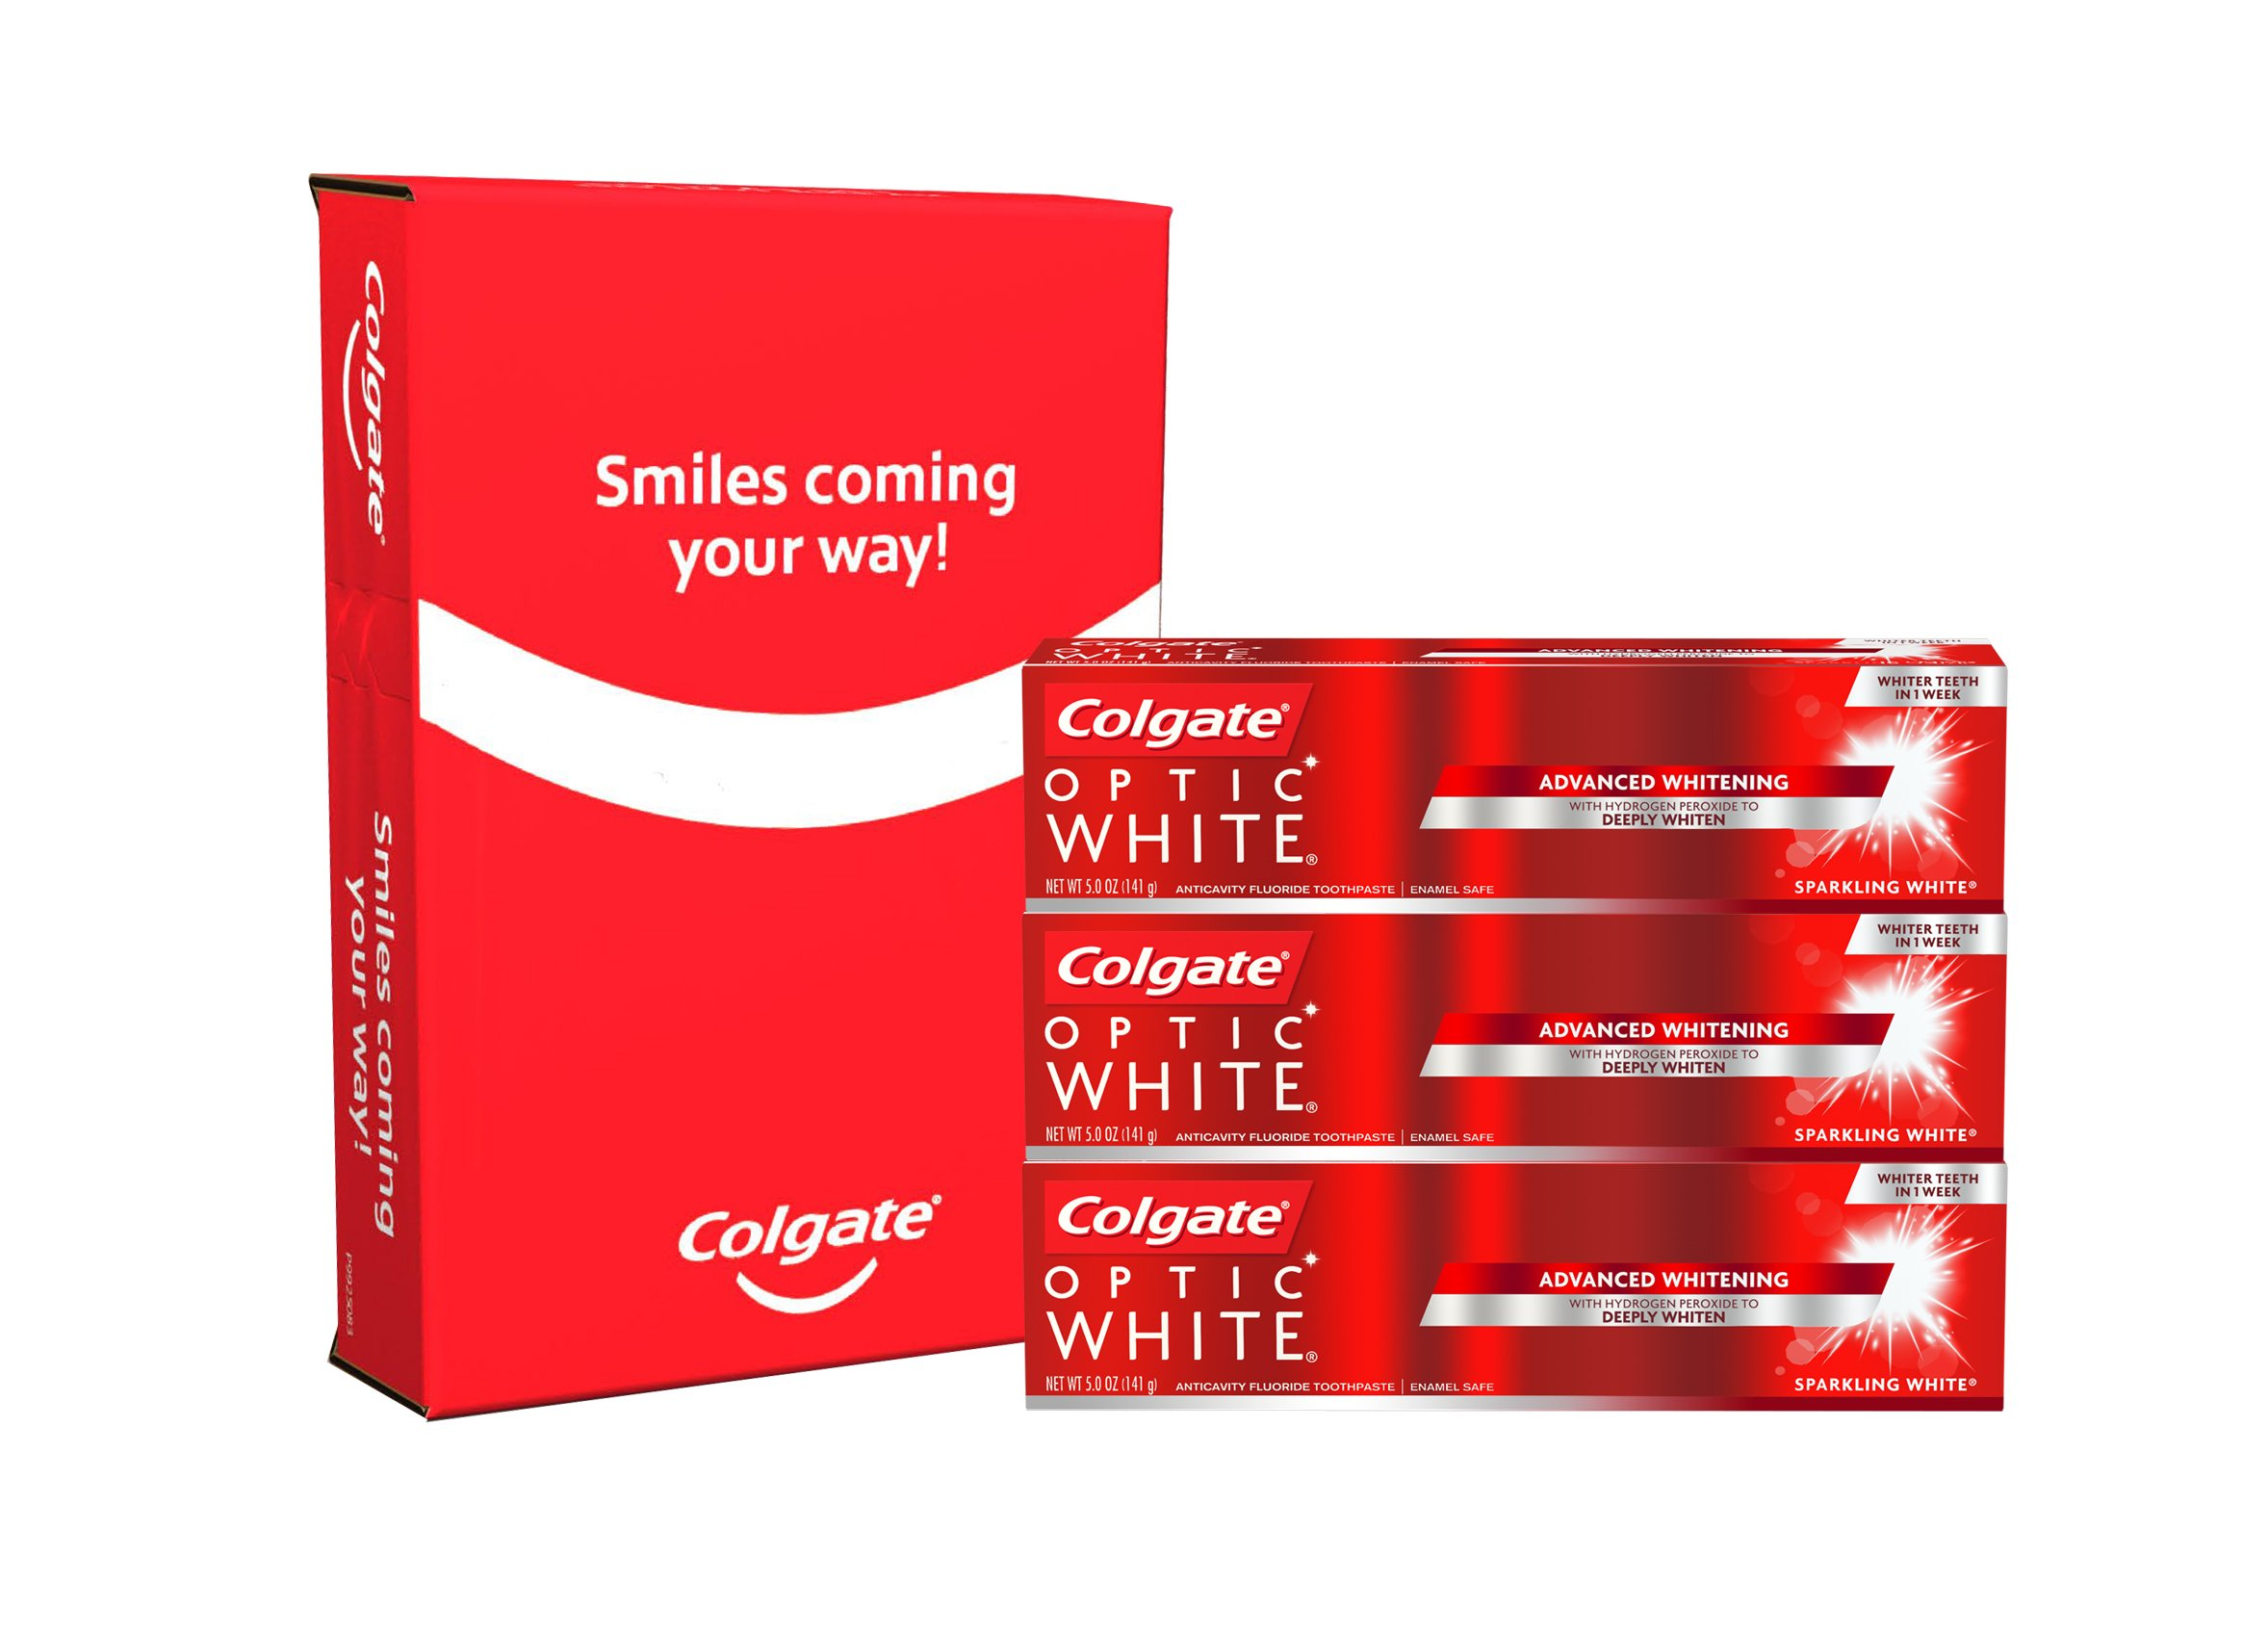 Colgate Optic White Whitening Toothpaste, Sparkling Mint, 5 Ounce, 3 Count by Colgate (Image #3)